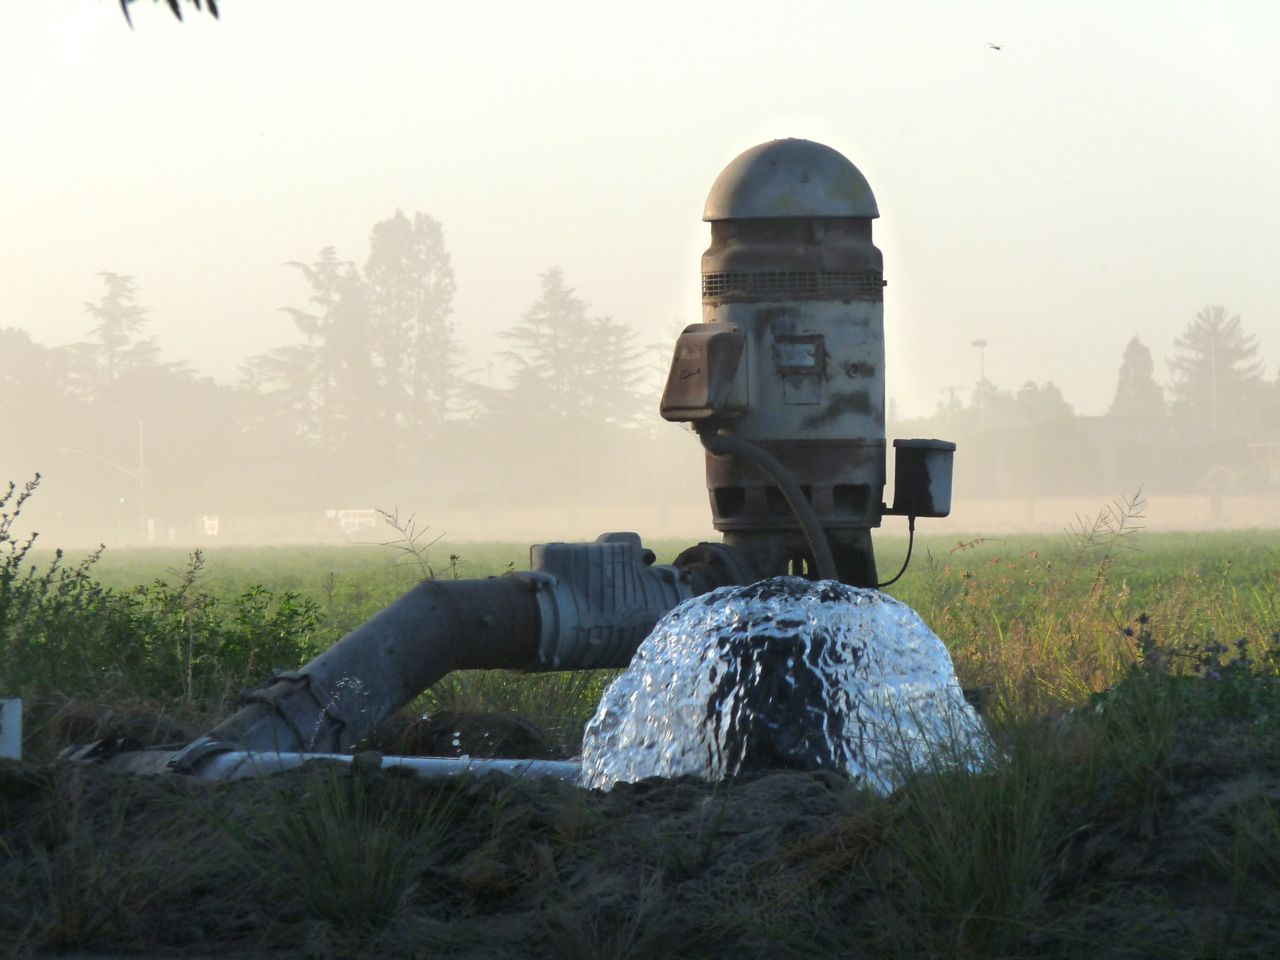 Governor Brown's Groundwater Legislation Signing was Imminent